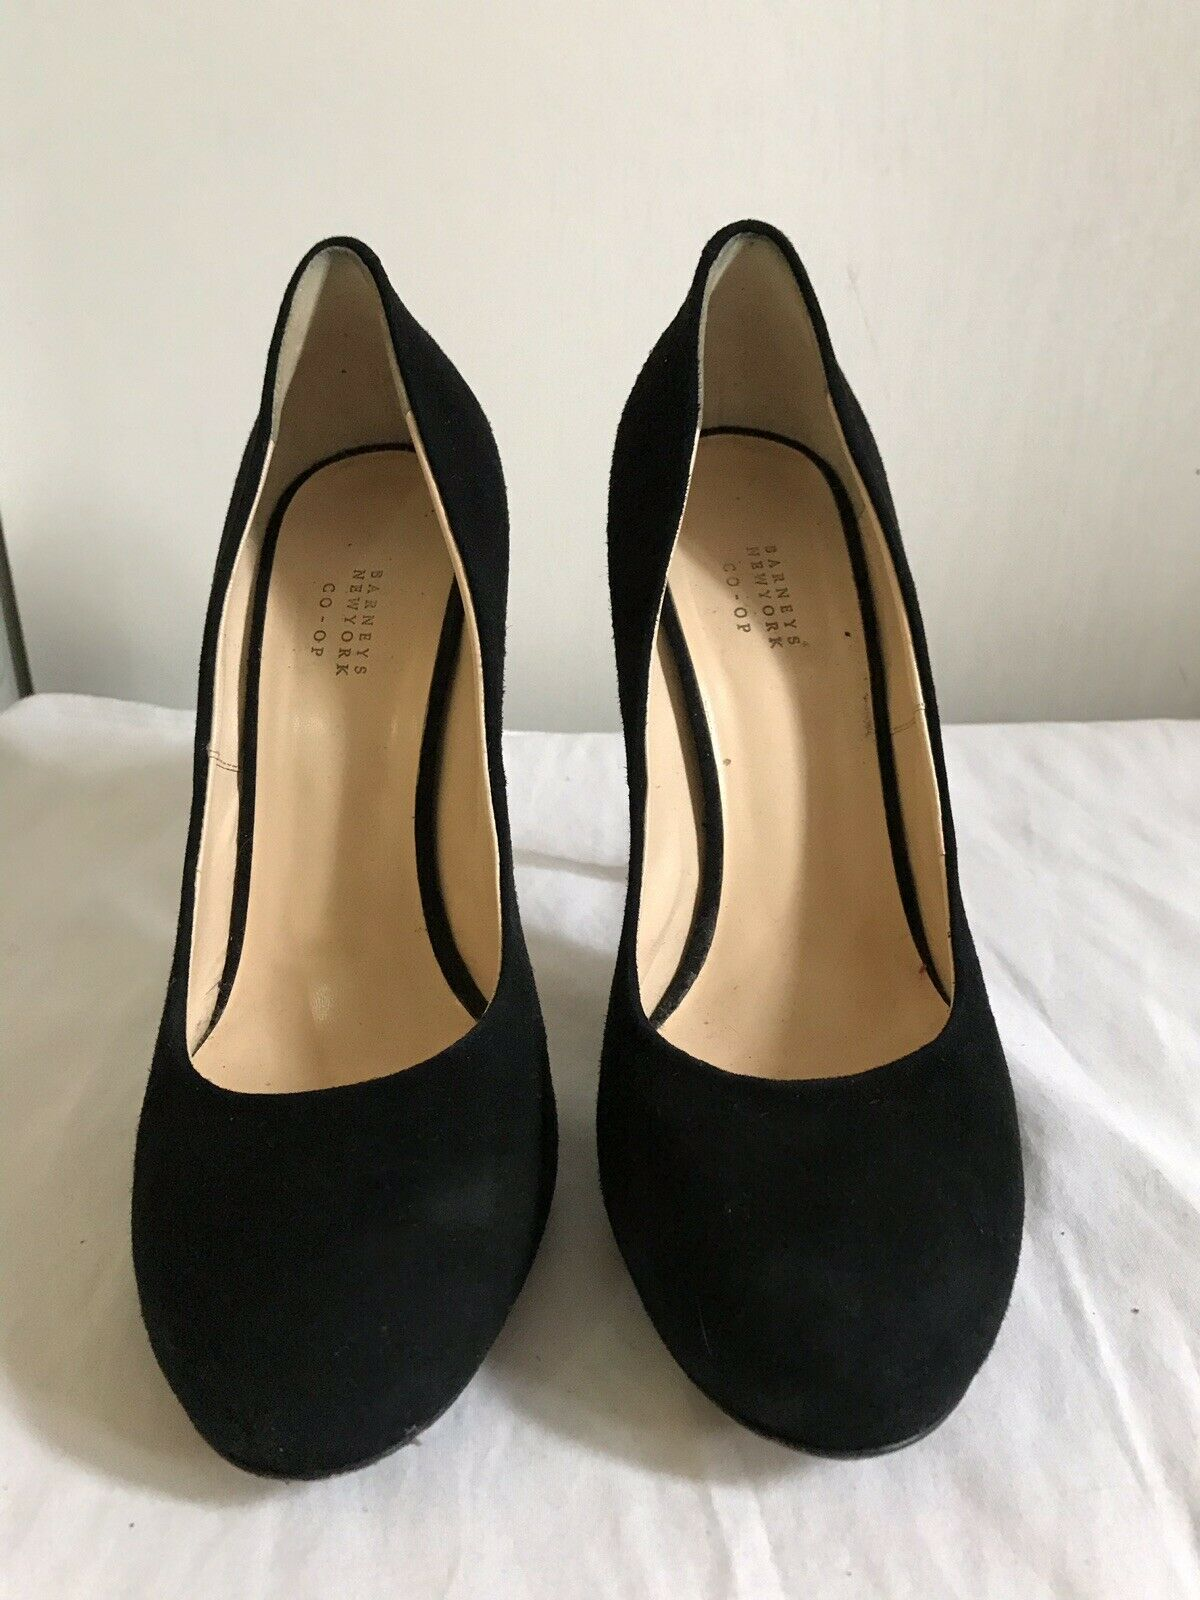 BARNEY'S New york Black Suede high Heels Sz 9